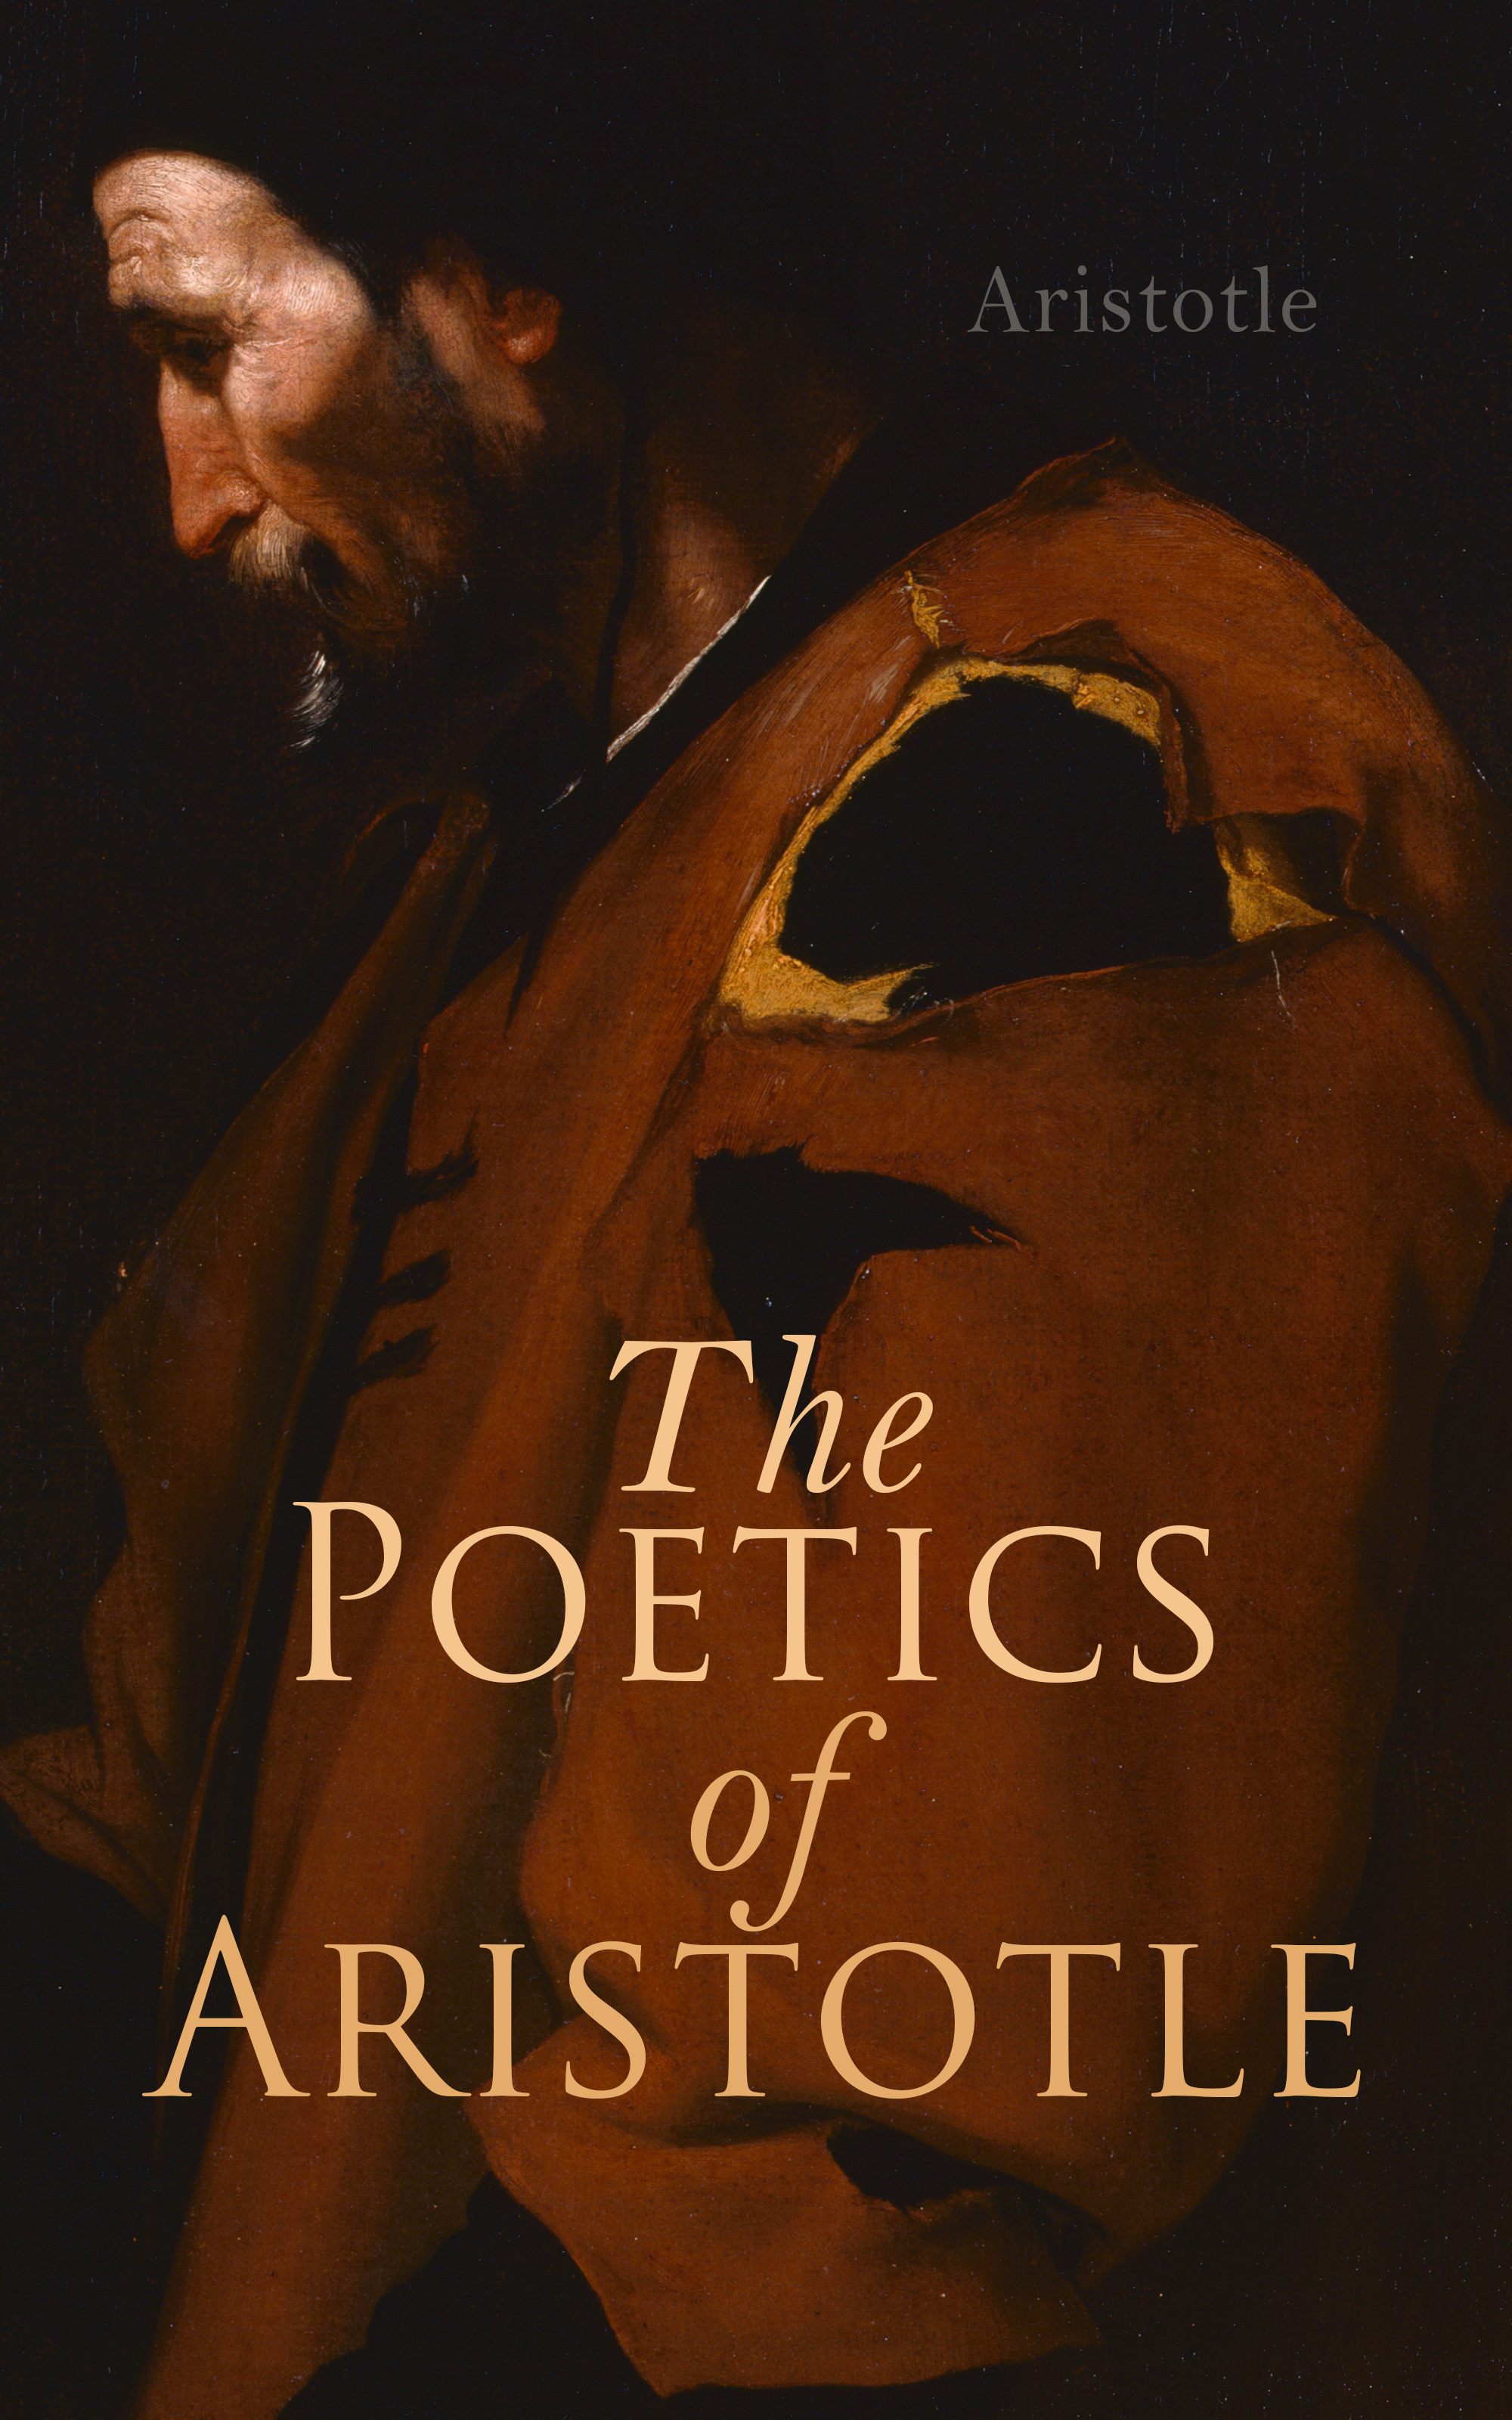 Aristotle The Poetics of Aristotle reading farewell gifts in early modern poetry and drama